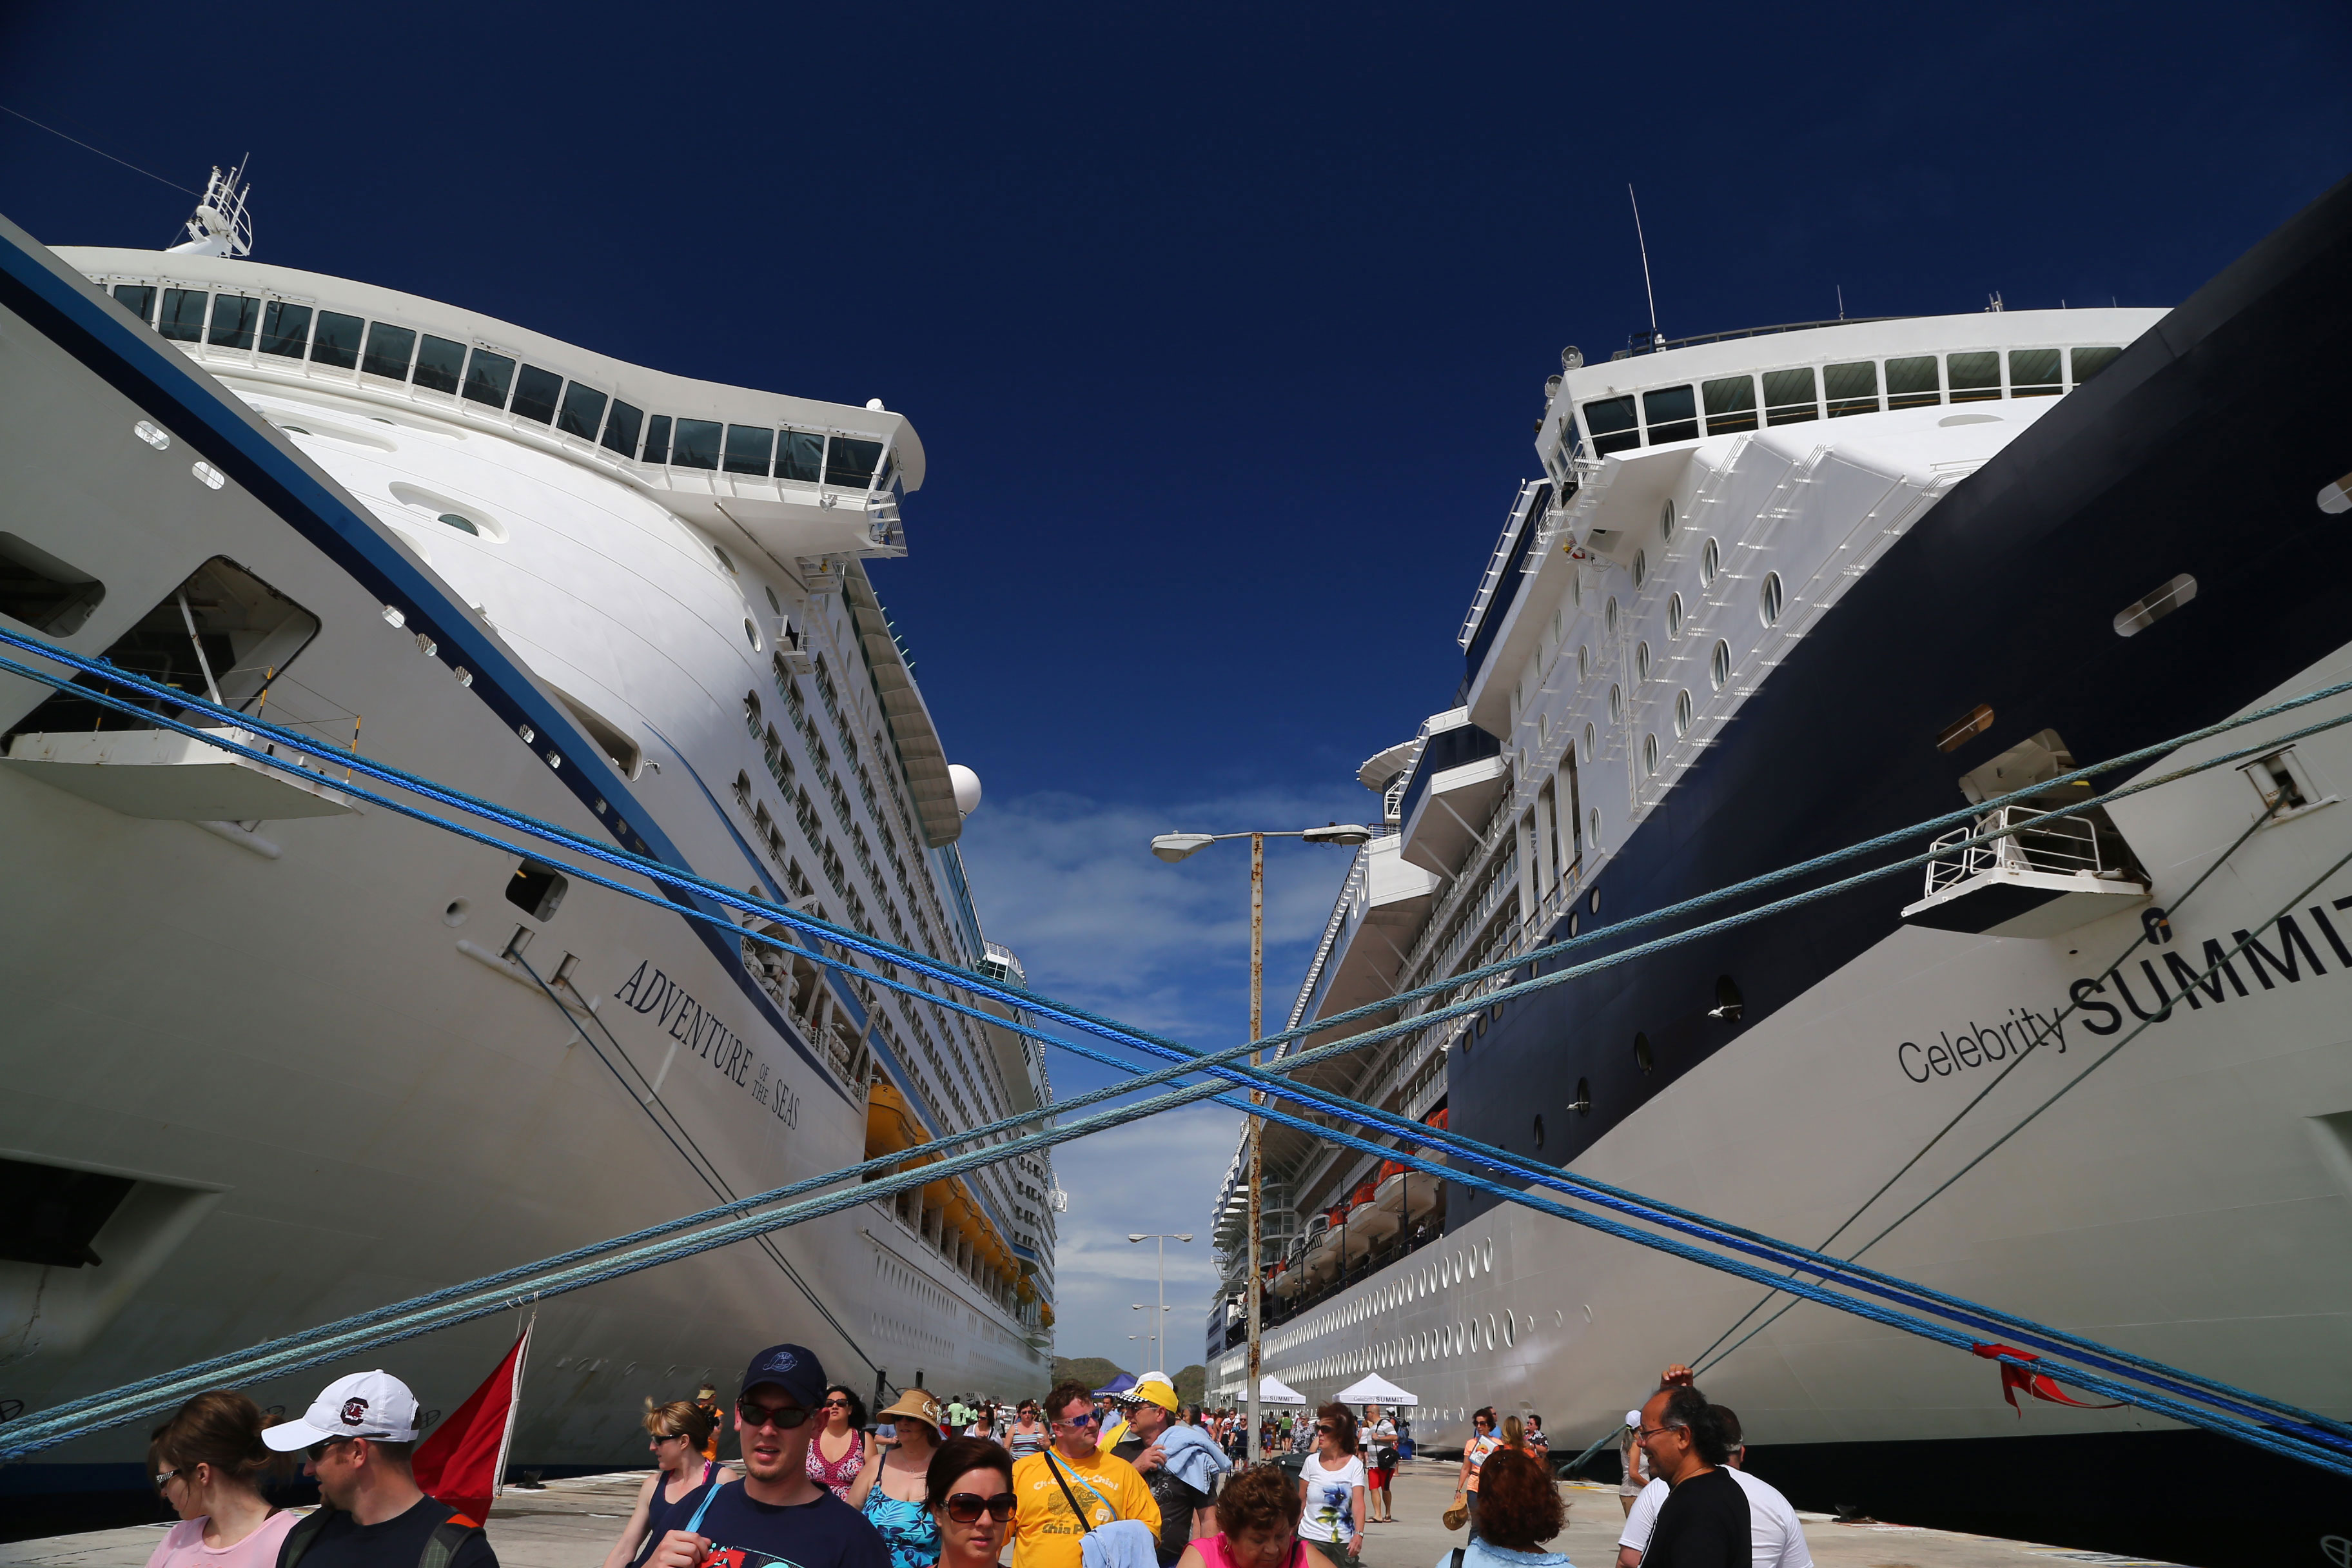 The Celebrity 'Summit' on the right hand side makes port next to the 'Adventure of the Seas' in St. Maarten